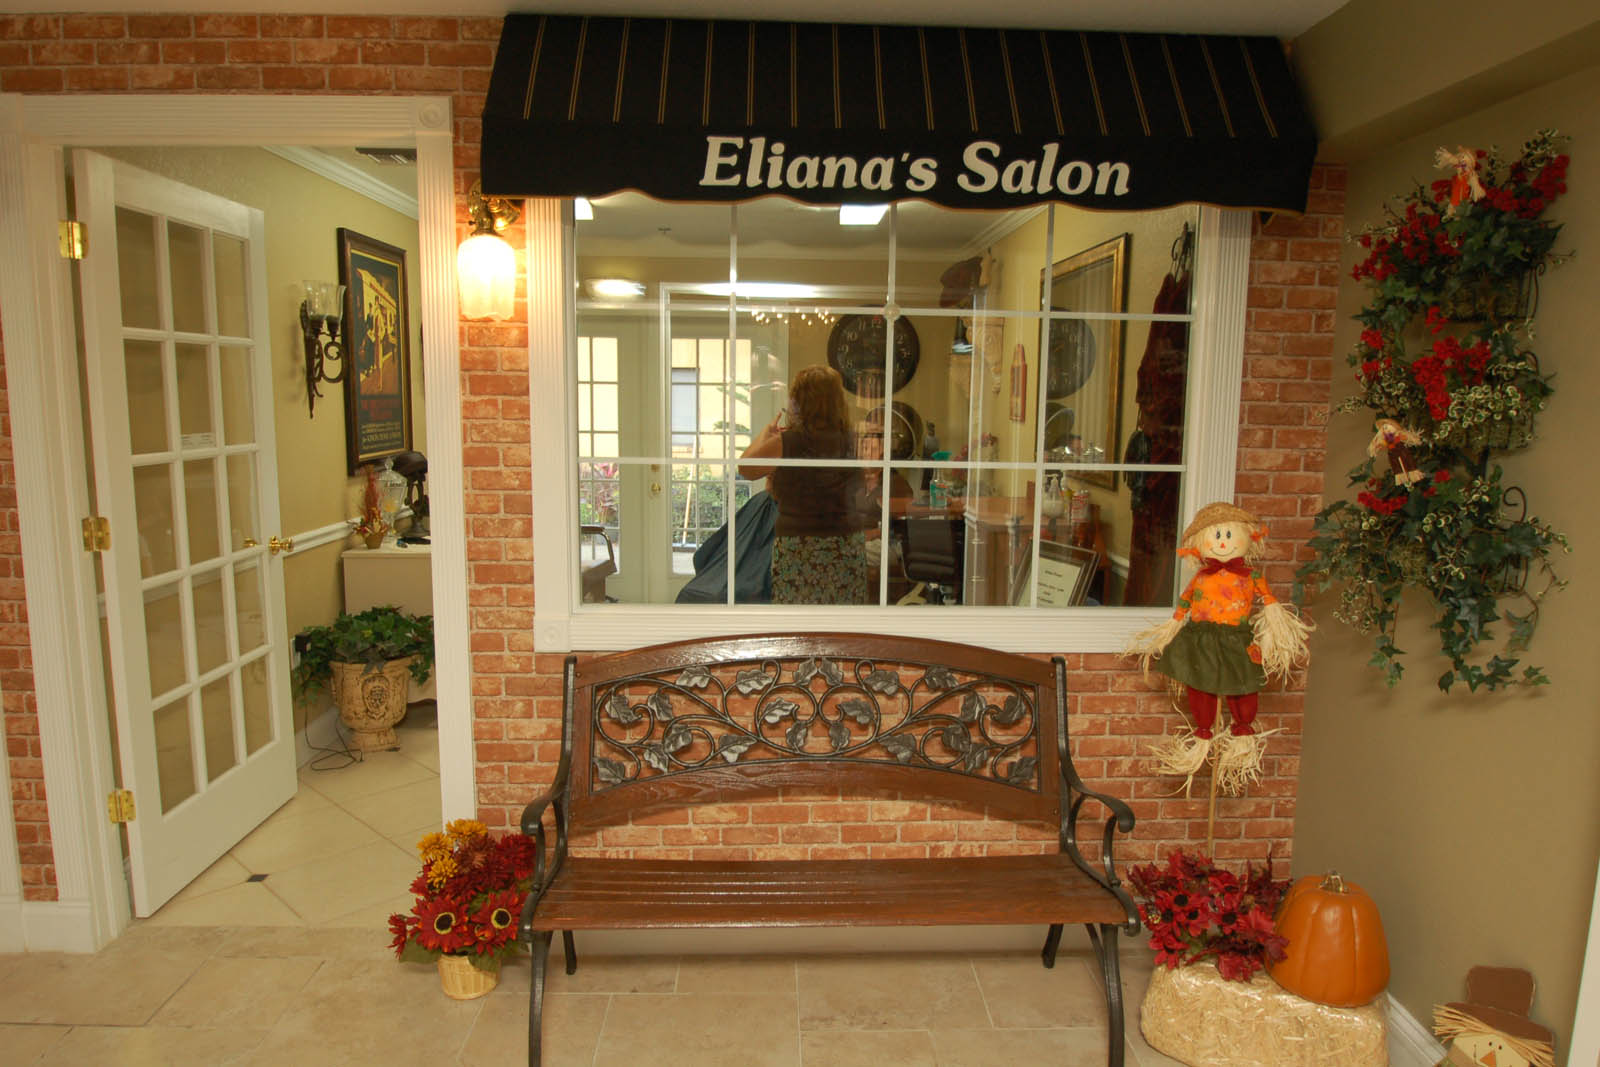 Senior living in Altamonte Springs has a beauty salon